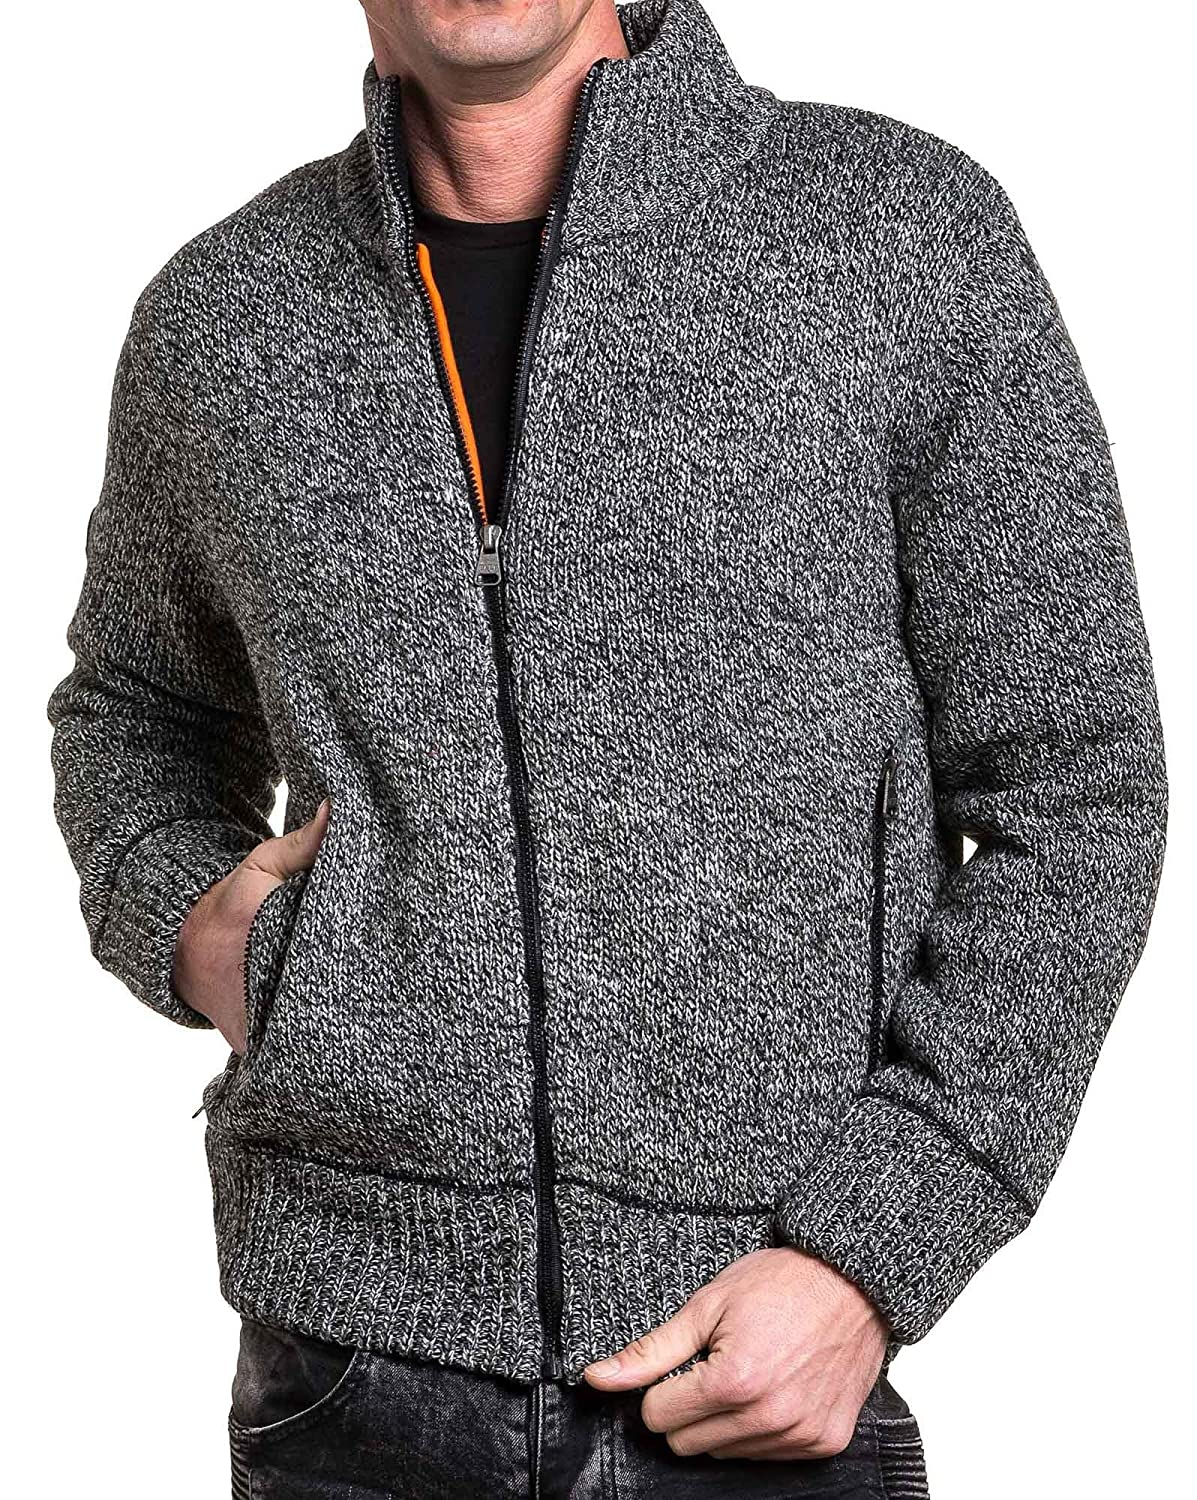 BLZ jeans - zipped jacket and gray ribbed man stuffed chine